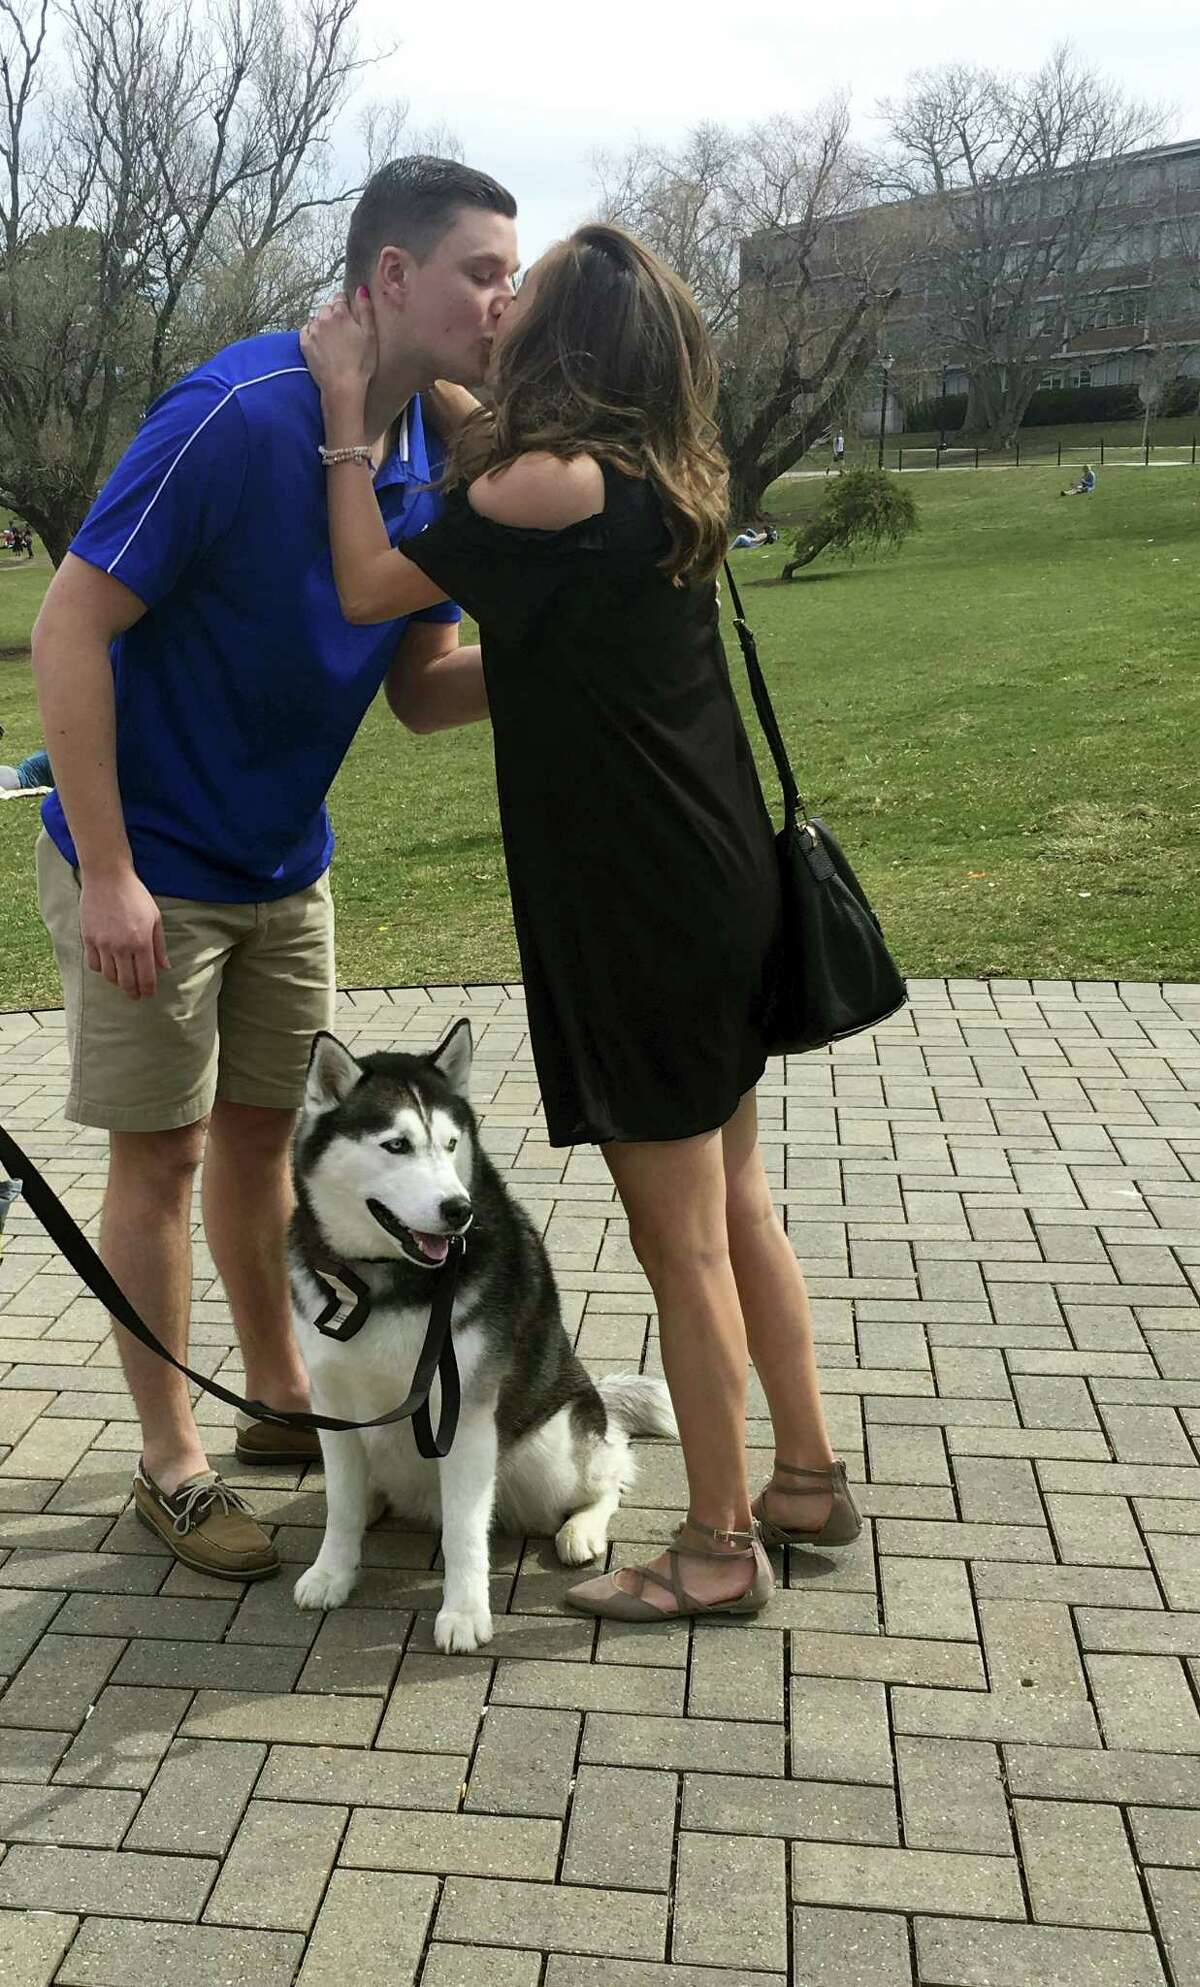 In this April 10 photo, University of Connecticut mascot Jonathan, a Siberian Husky, assists Daniel Bronko of Enfield in proposing to his girlfriend, Holly Korona, on the school's campus in Storrs.